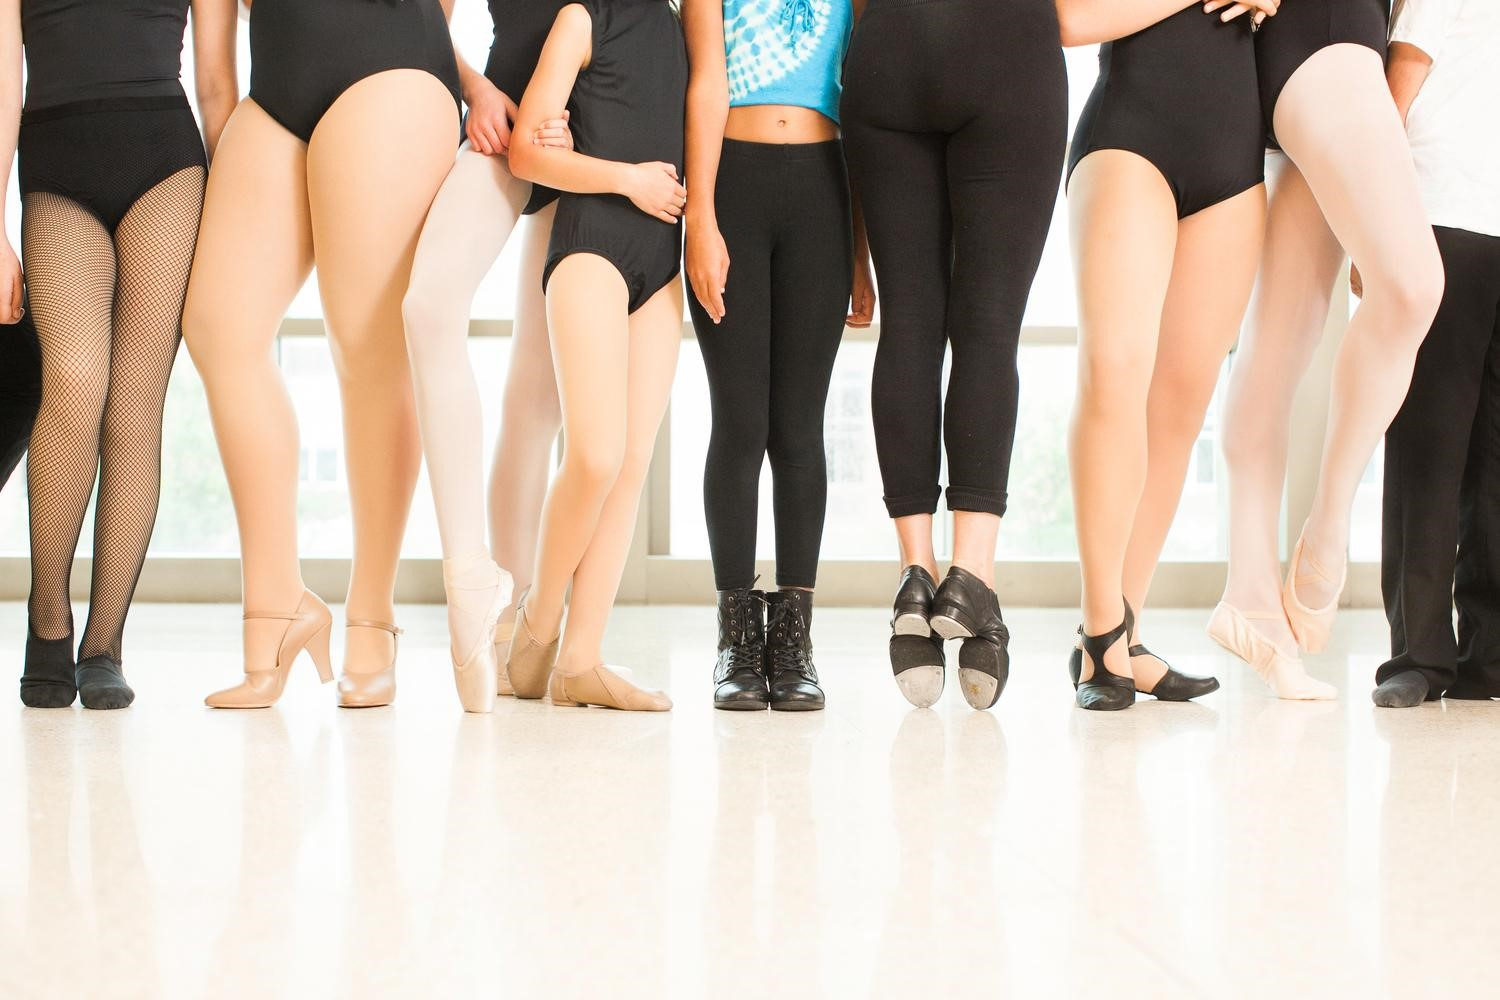 What is considered a well-rounded training routine for dancers?